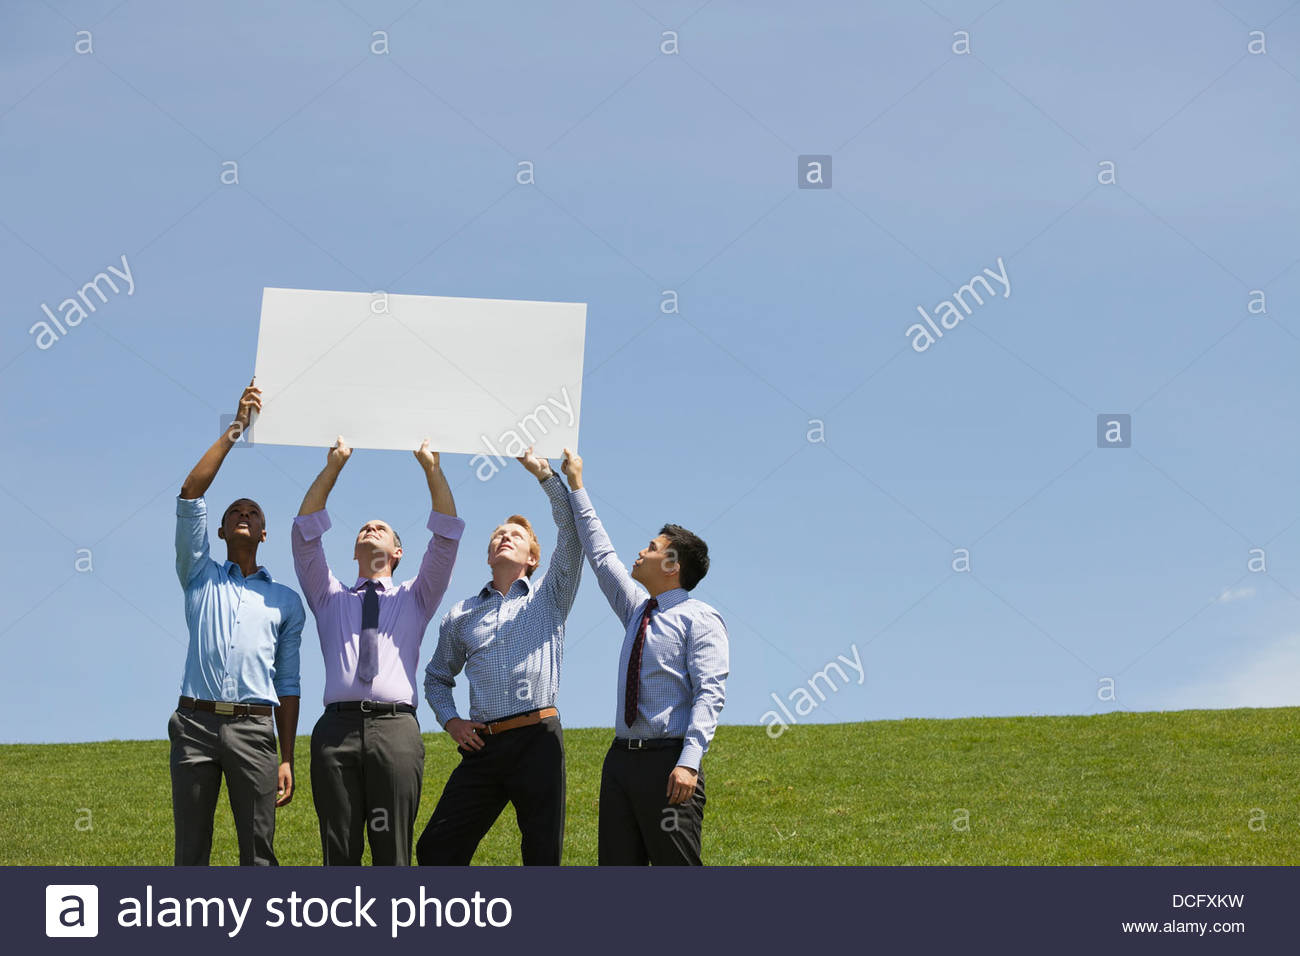 Groupe d'hommes d'ensemble holding blank sign Photo Stock